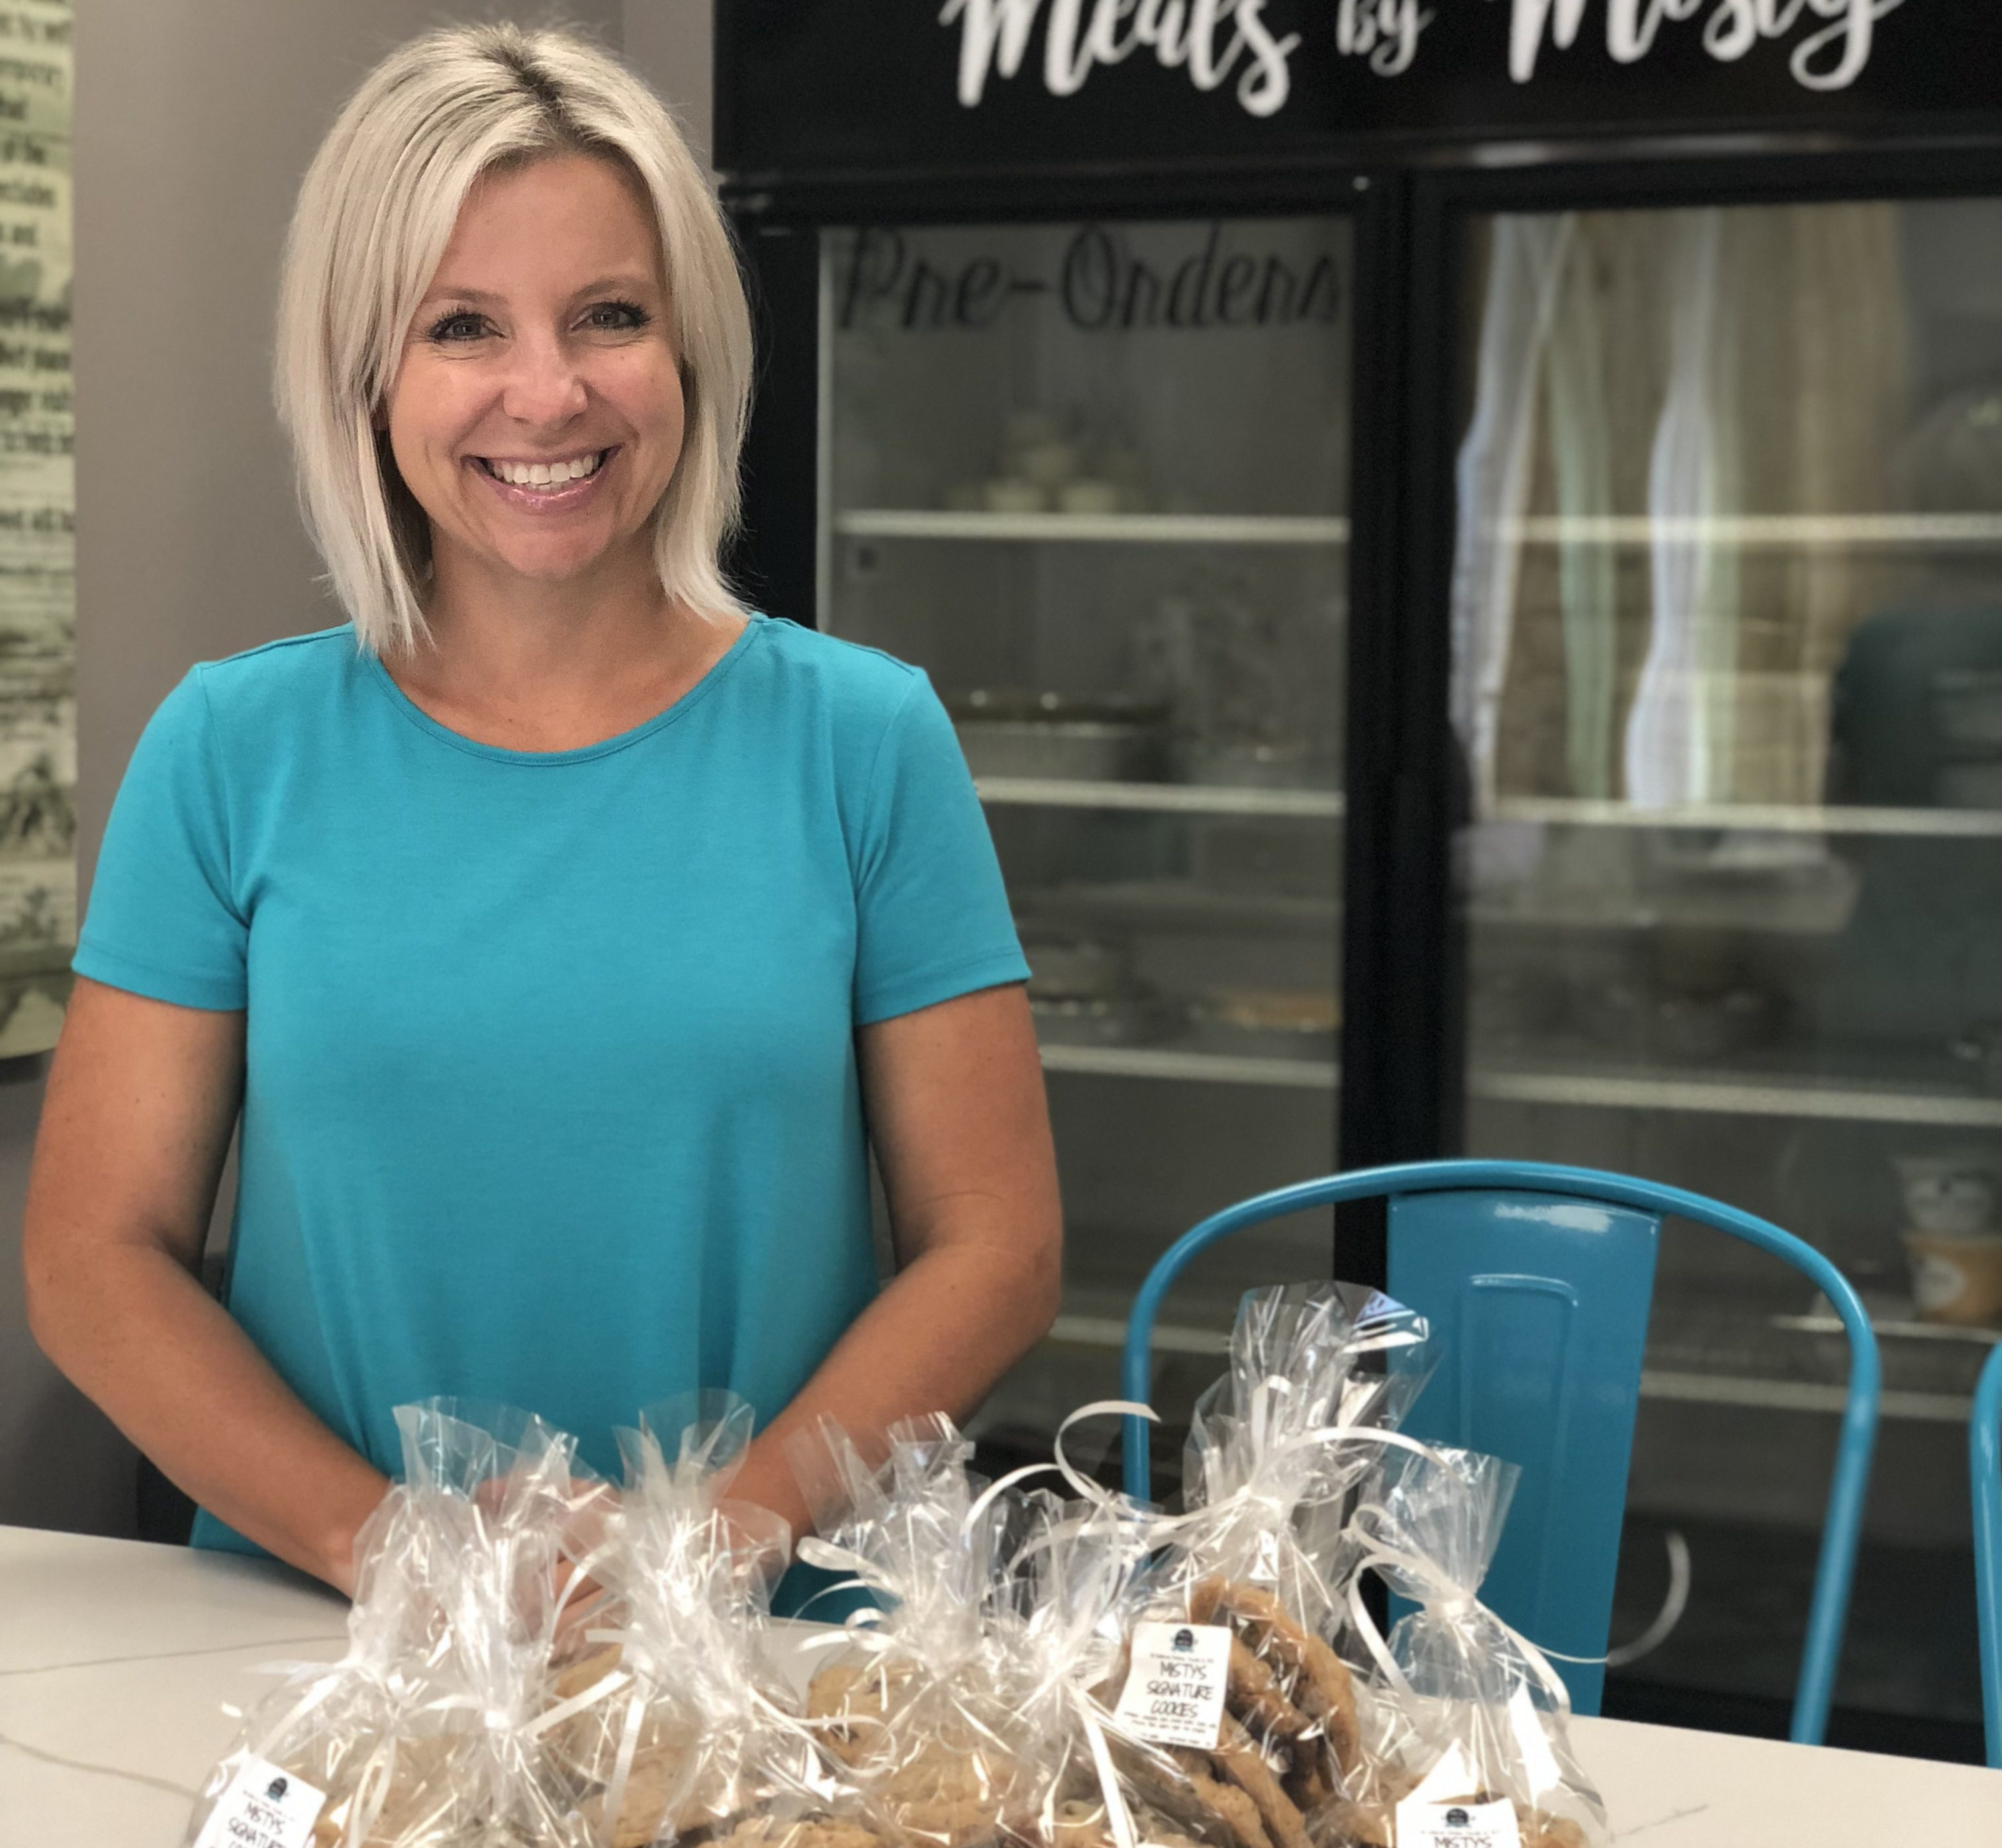 Meals by Misty opens for love of community and cooking in Trussville